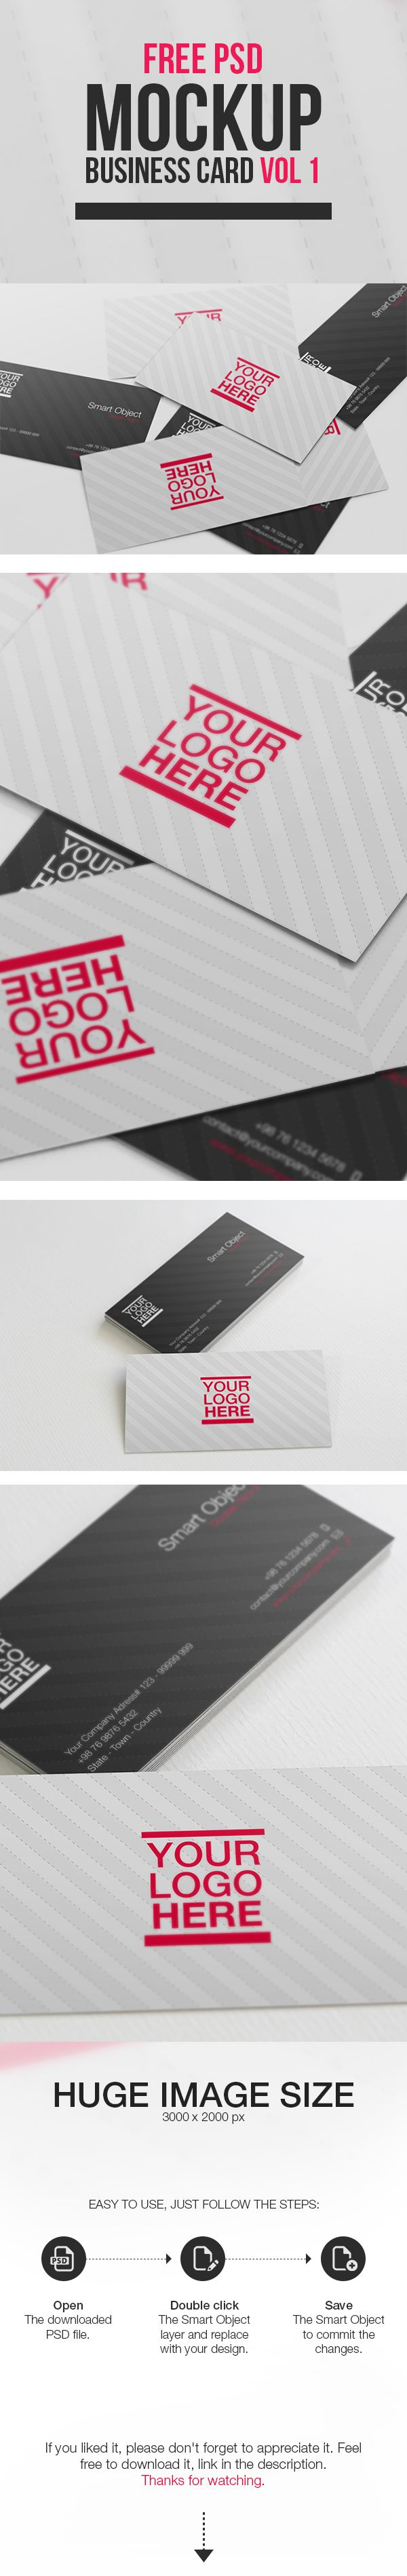 best ideas about business card software cool psd mockup business card vol 1 on behance